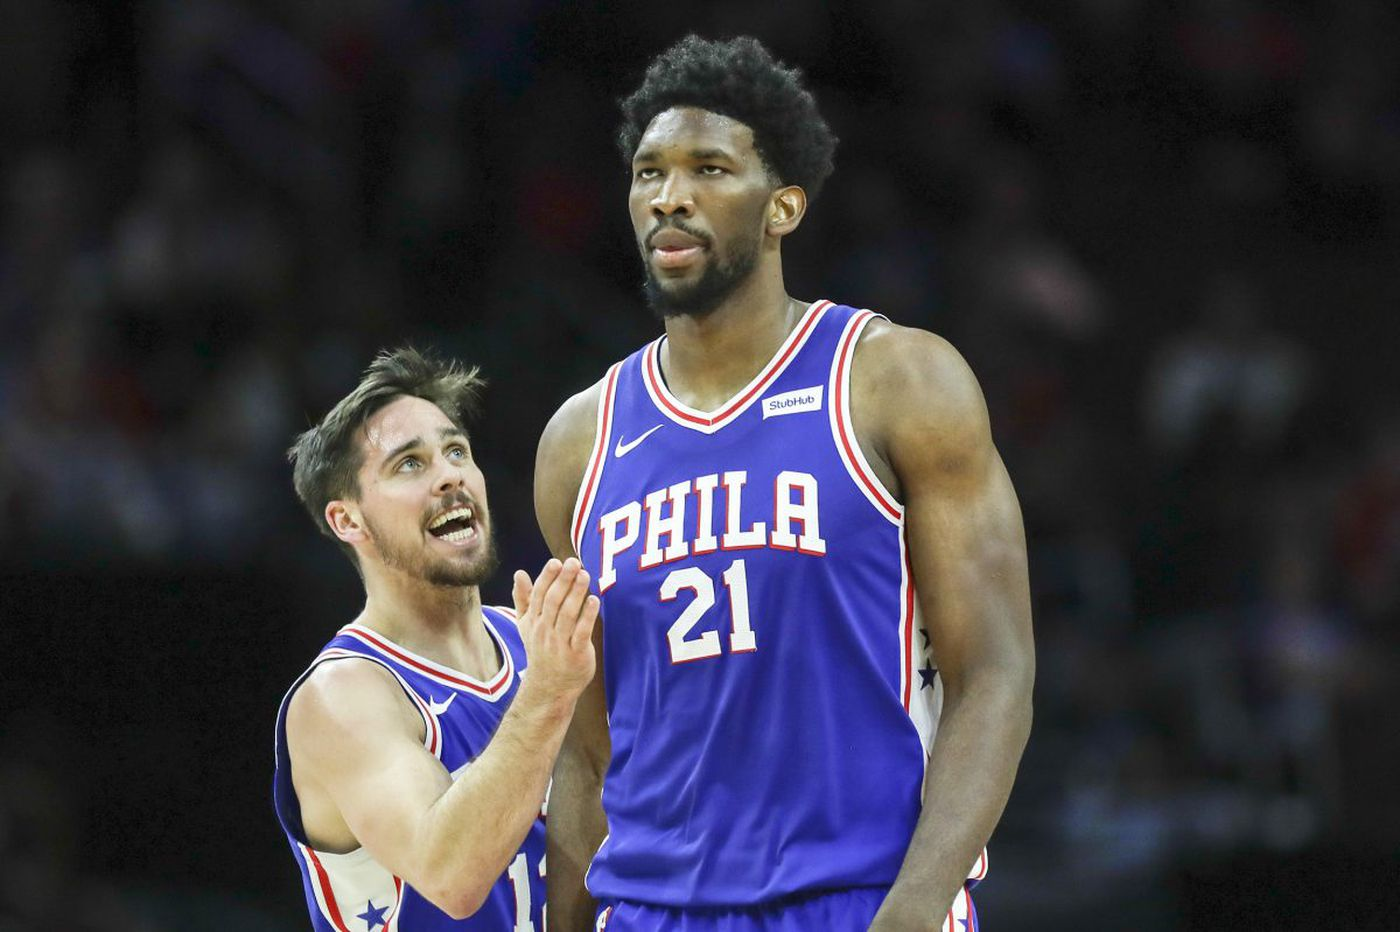 Sixers' Joel Embiid, T.J. McConnell to play at Minnesota Timberwolves